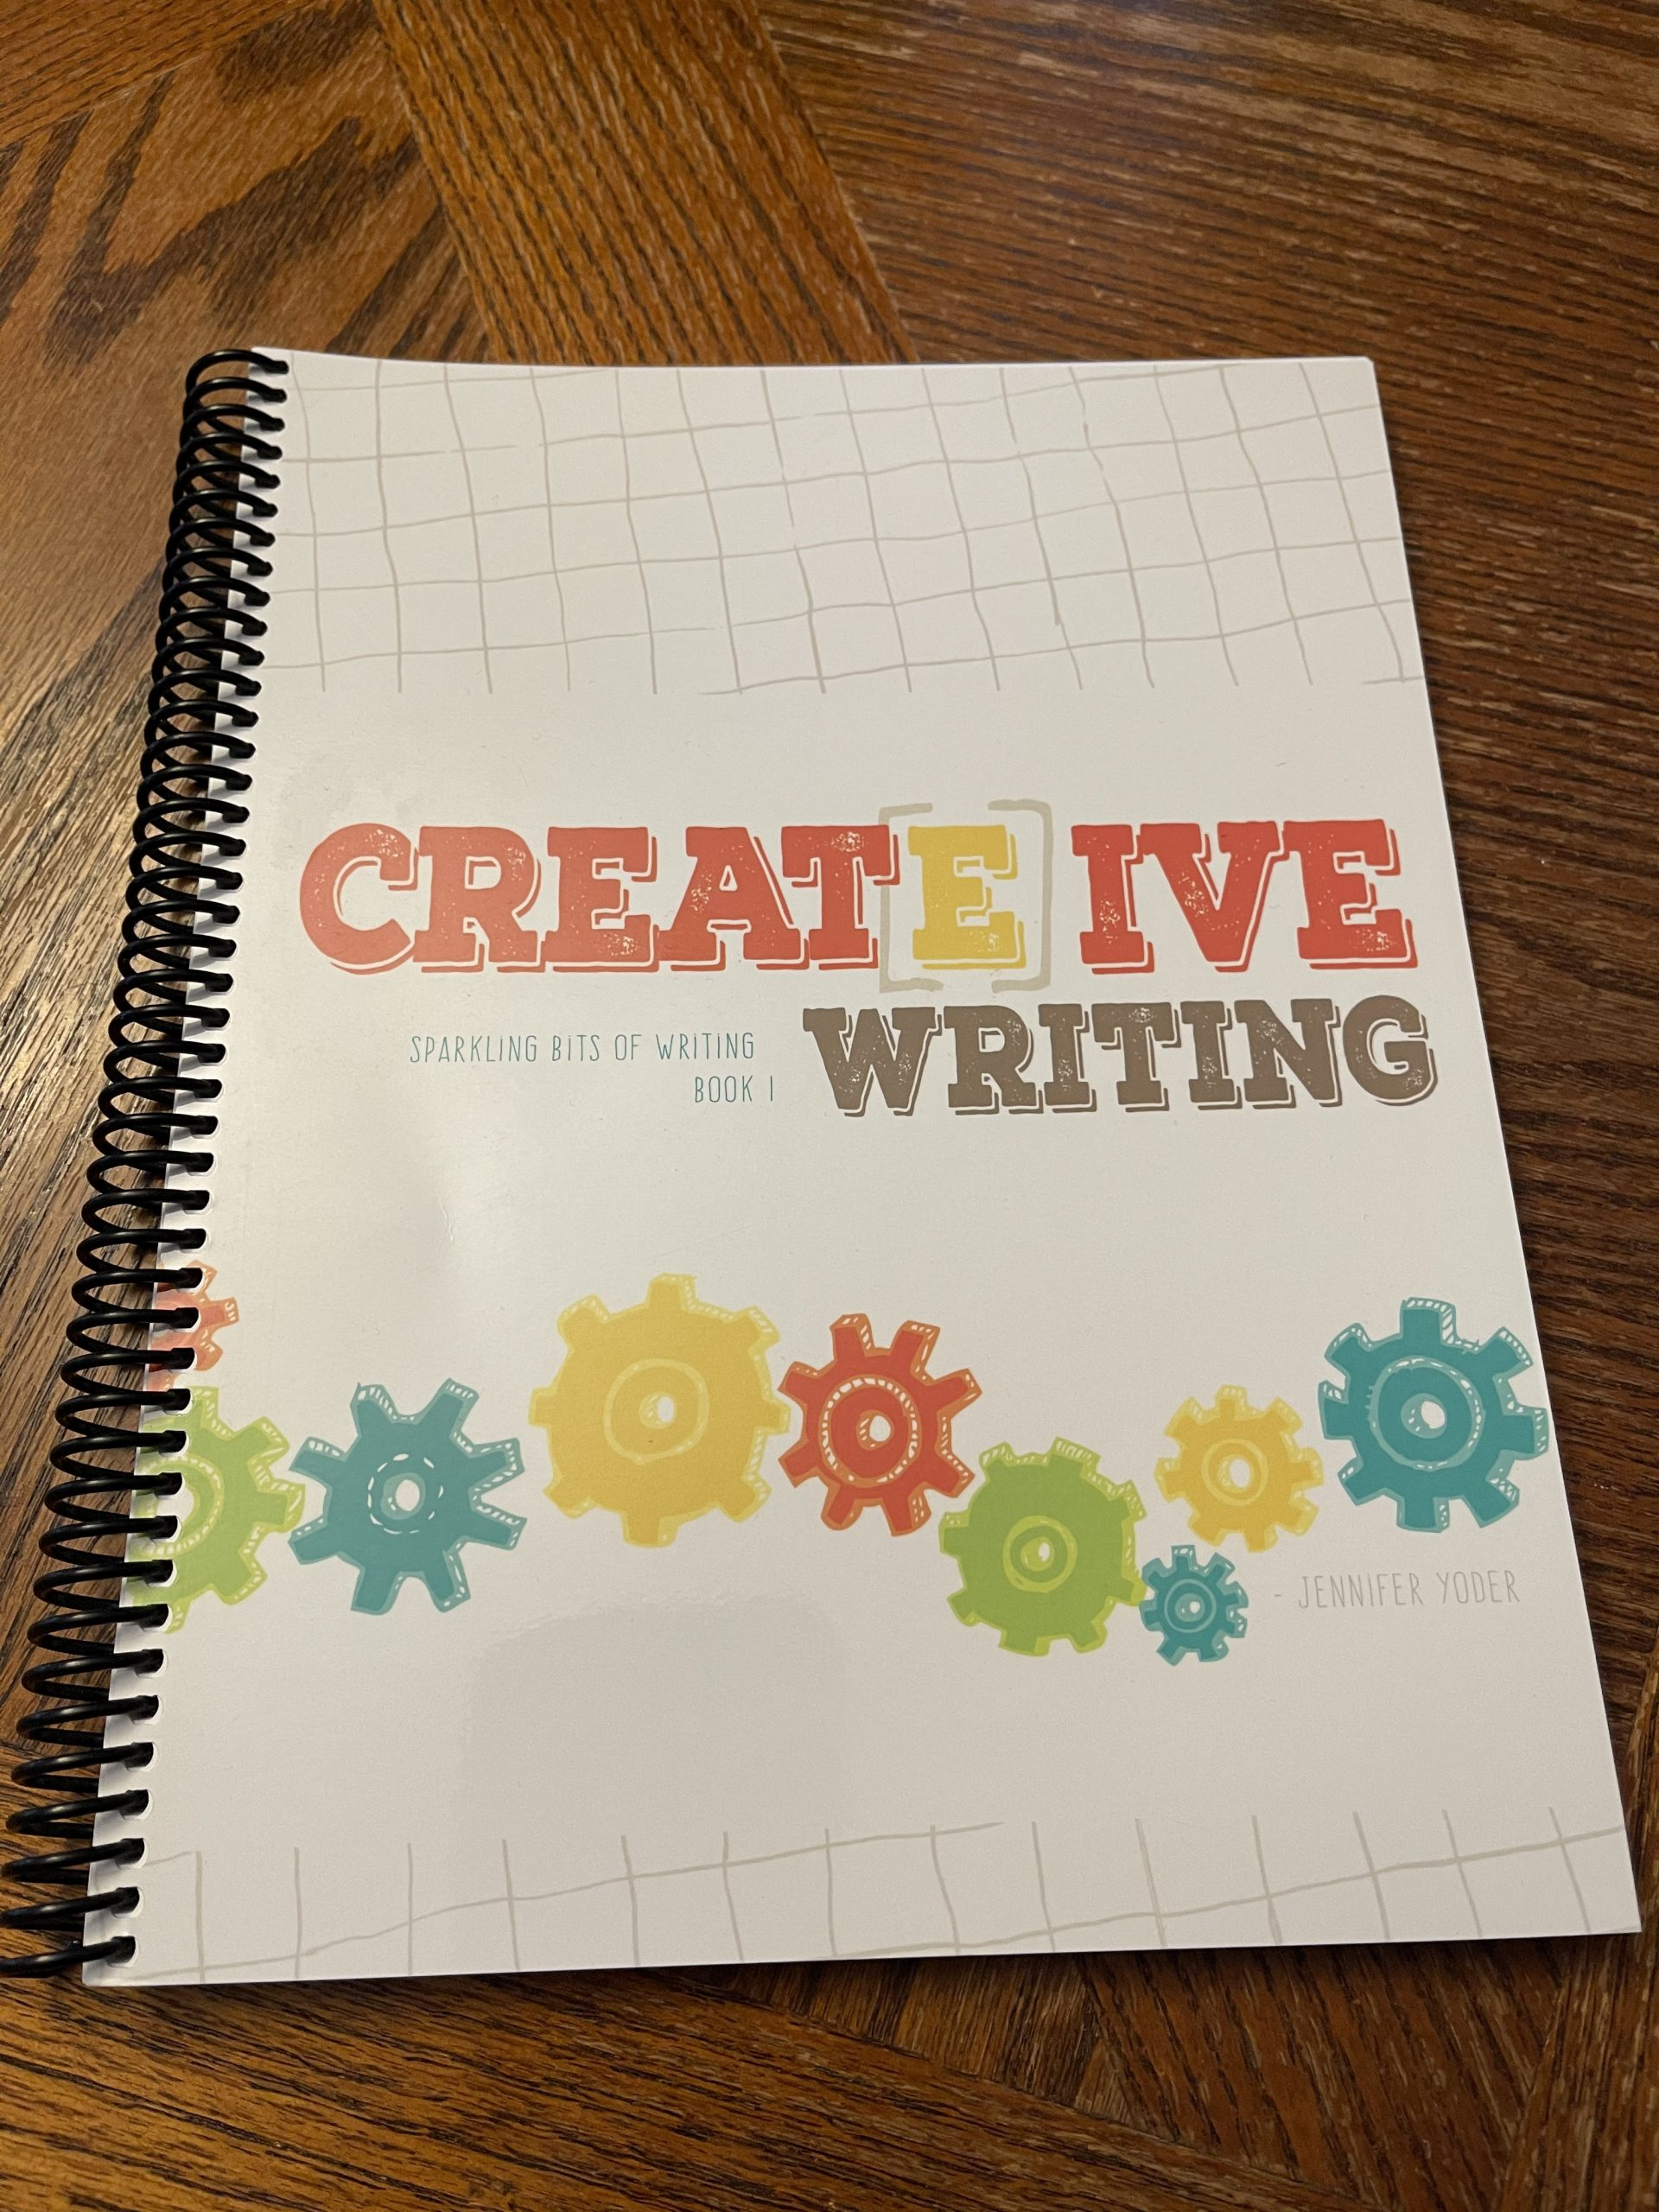 Sparkling Bits of Writing Book 1